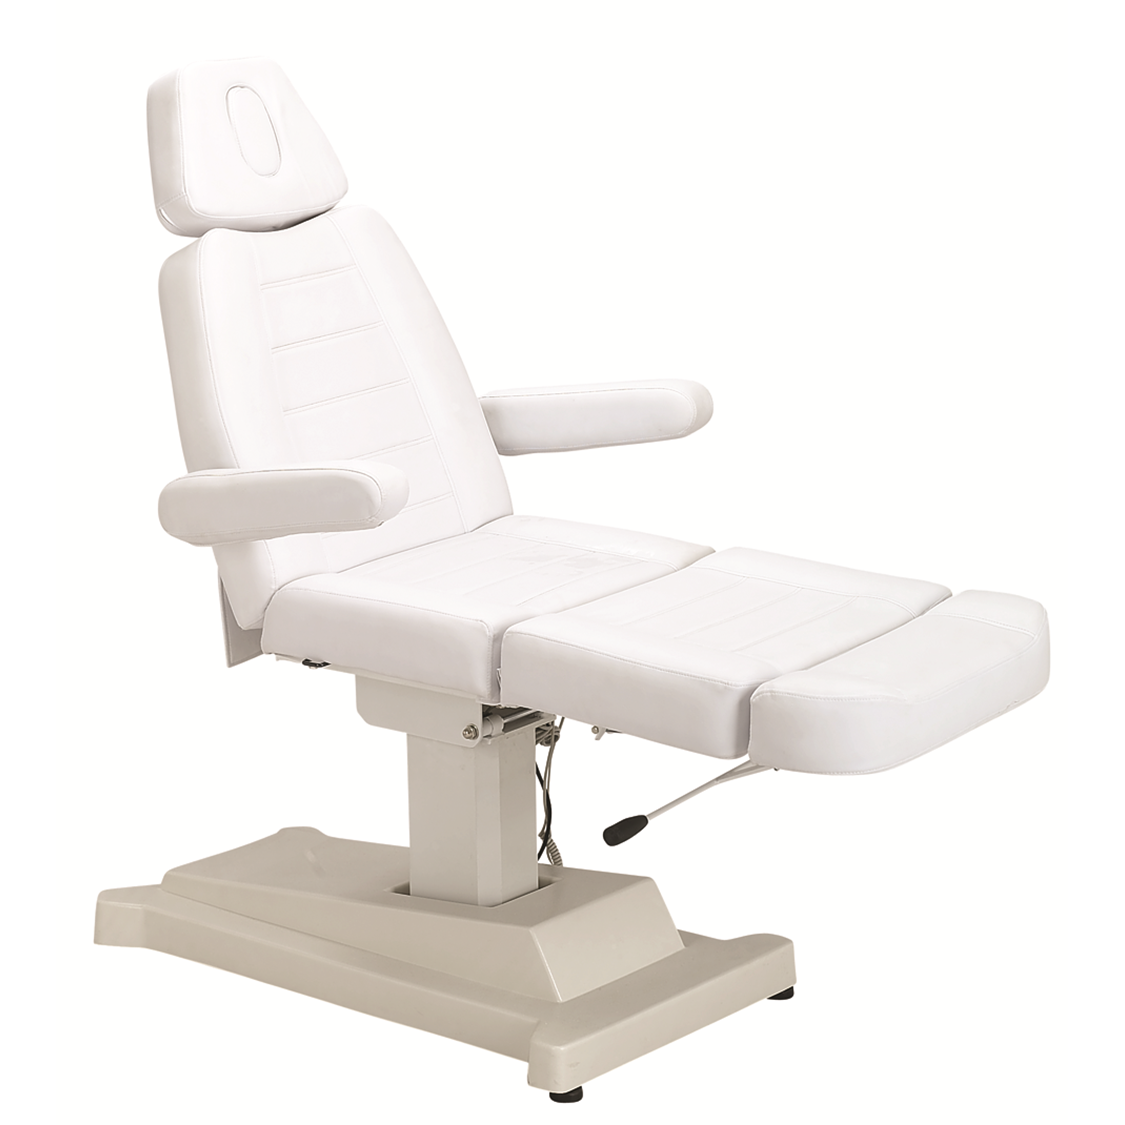 Malibu Spa Treatment Table - Garfield Commercial Enterprises Salon Equipment Spa Furniture Barber Chair Luxury